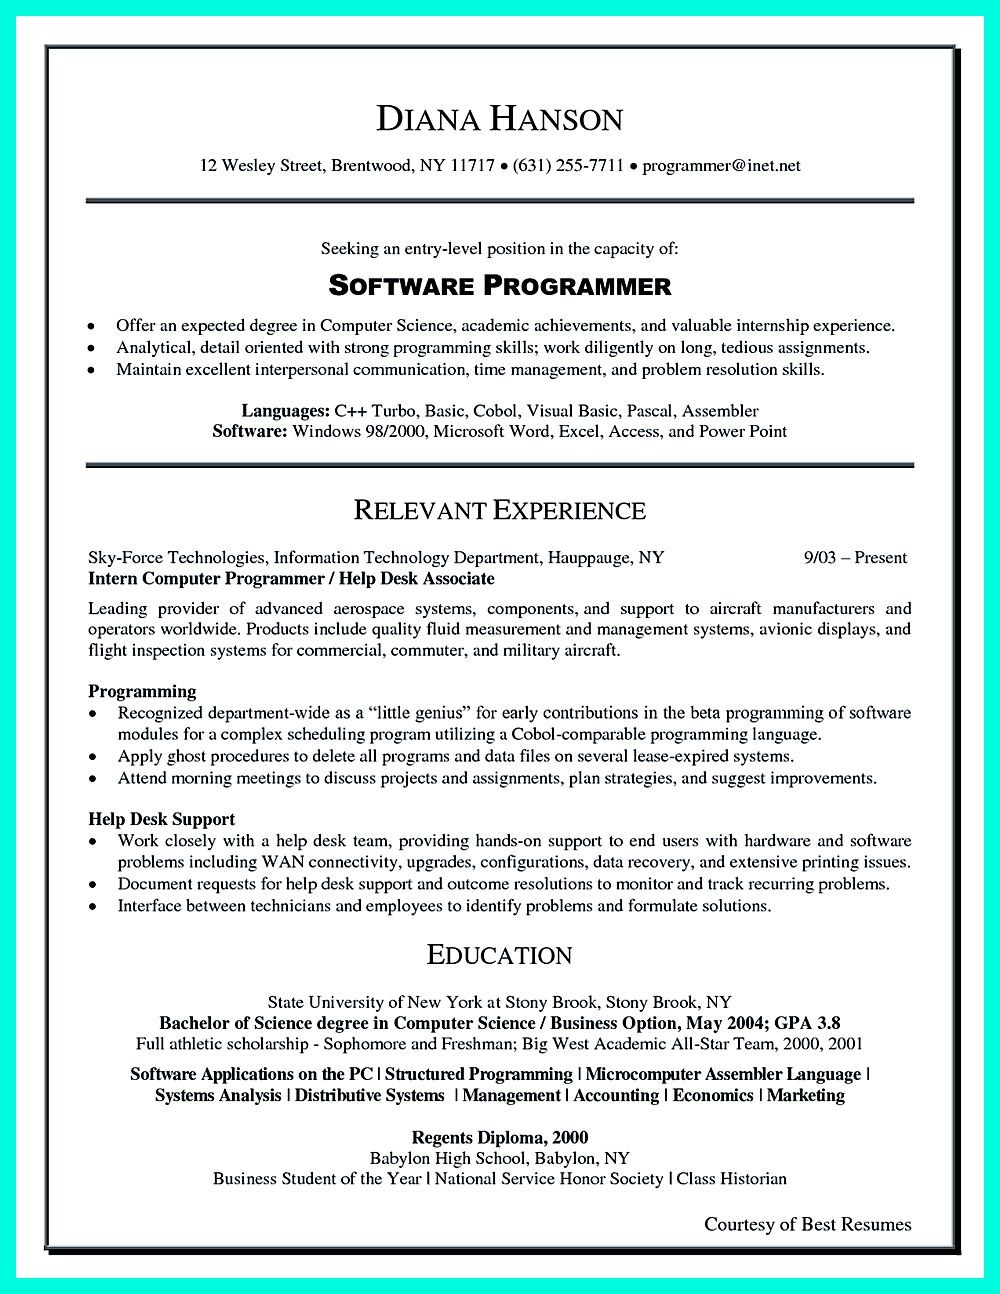 resume summary examples computer science